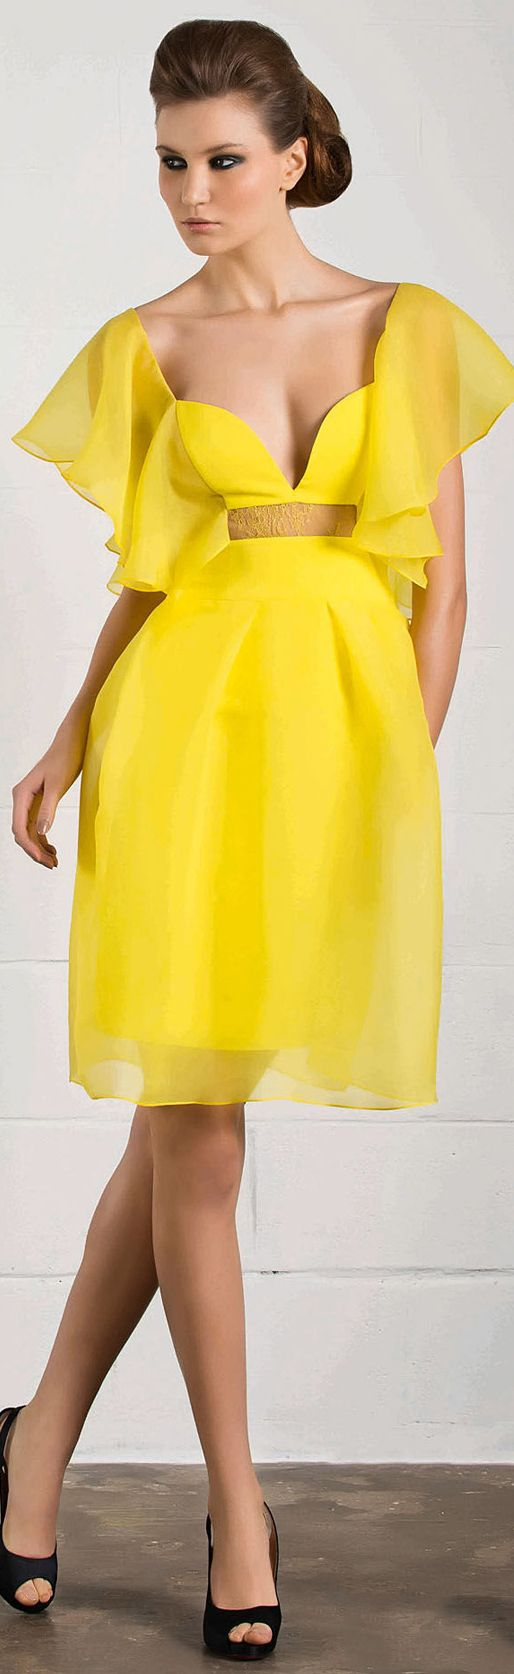 19 best Yellow images on Pinterest | Ballroom dress, Dress prom and ...